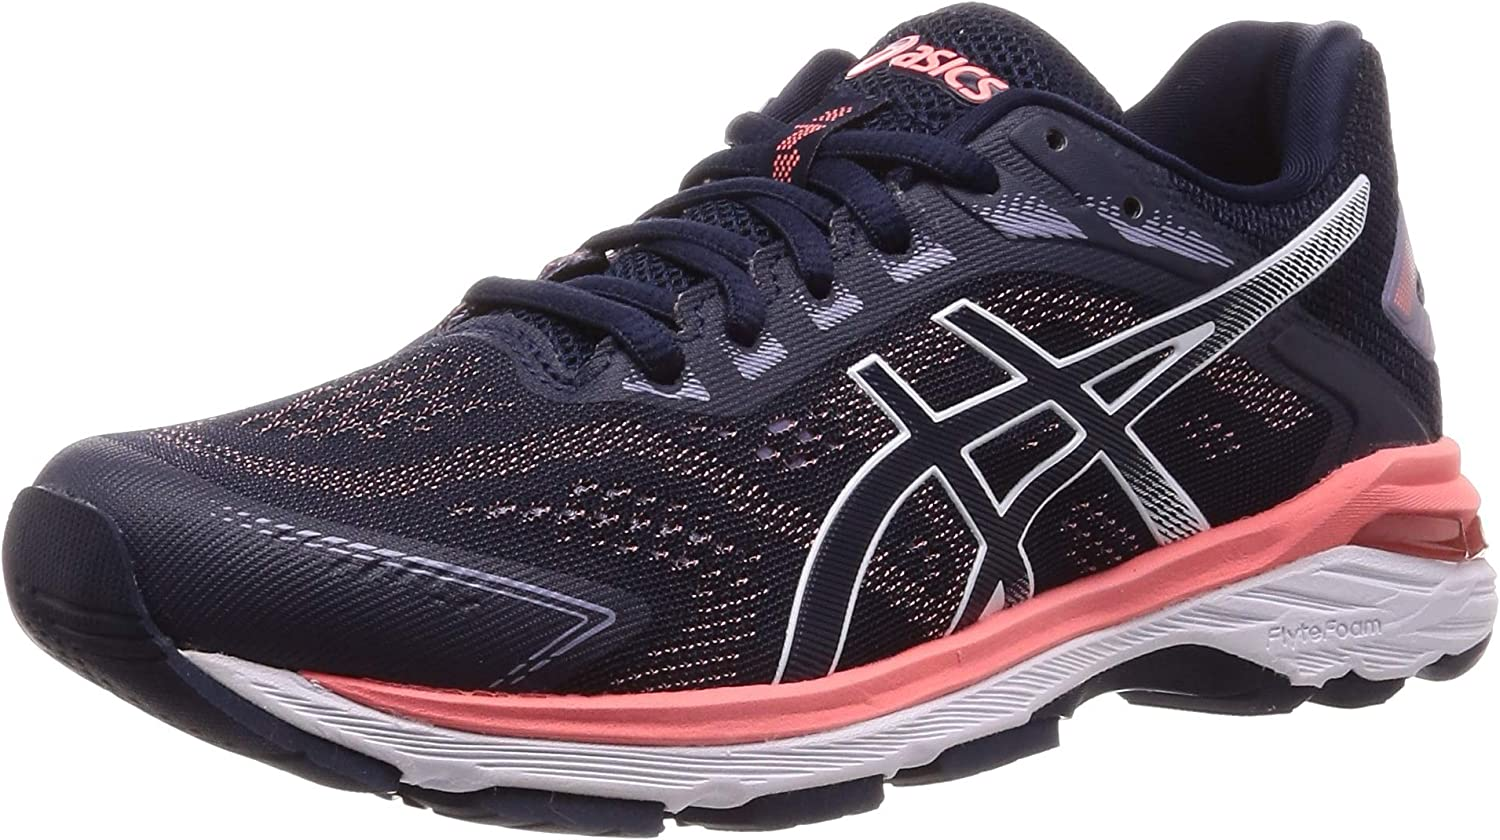 | ASICS Gt 2000 7 Womens Running Shoes 7.5 B(M